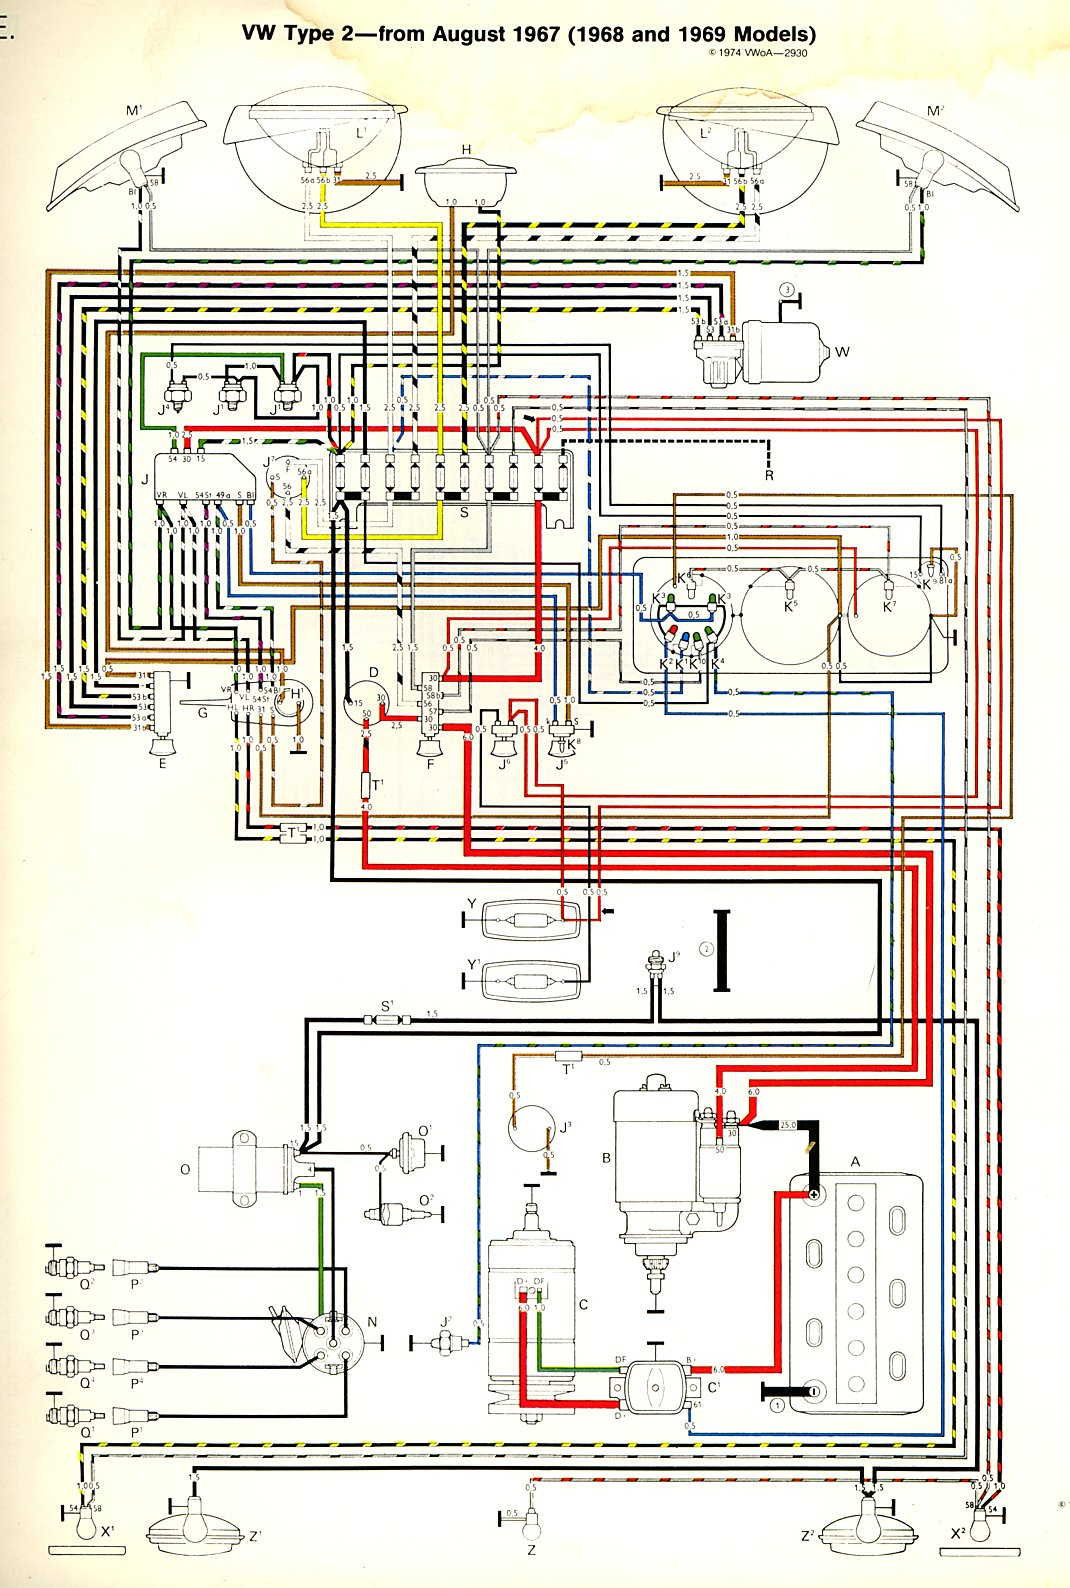 baybus_6869a bus wiring diagram vw wiring harness diagram \u2022 wiring diagrams j vw type 3 wiring harness at virtualis.co